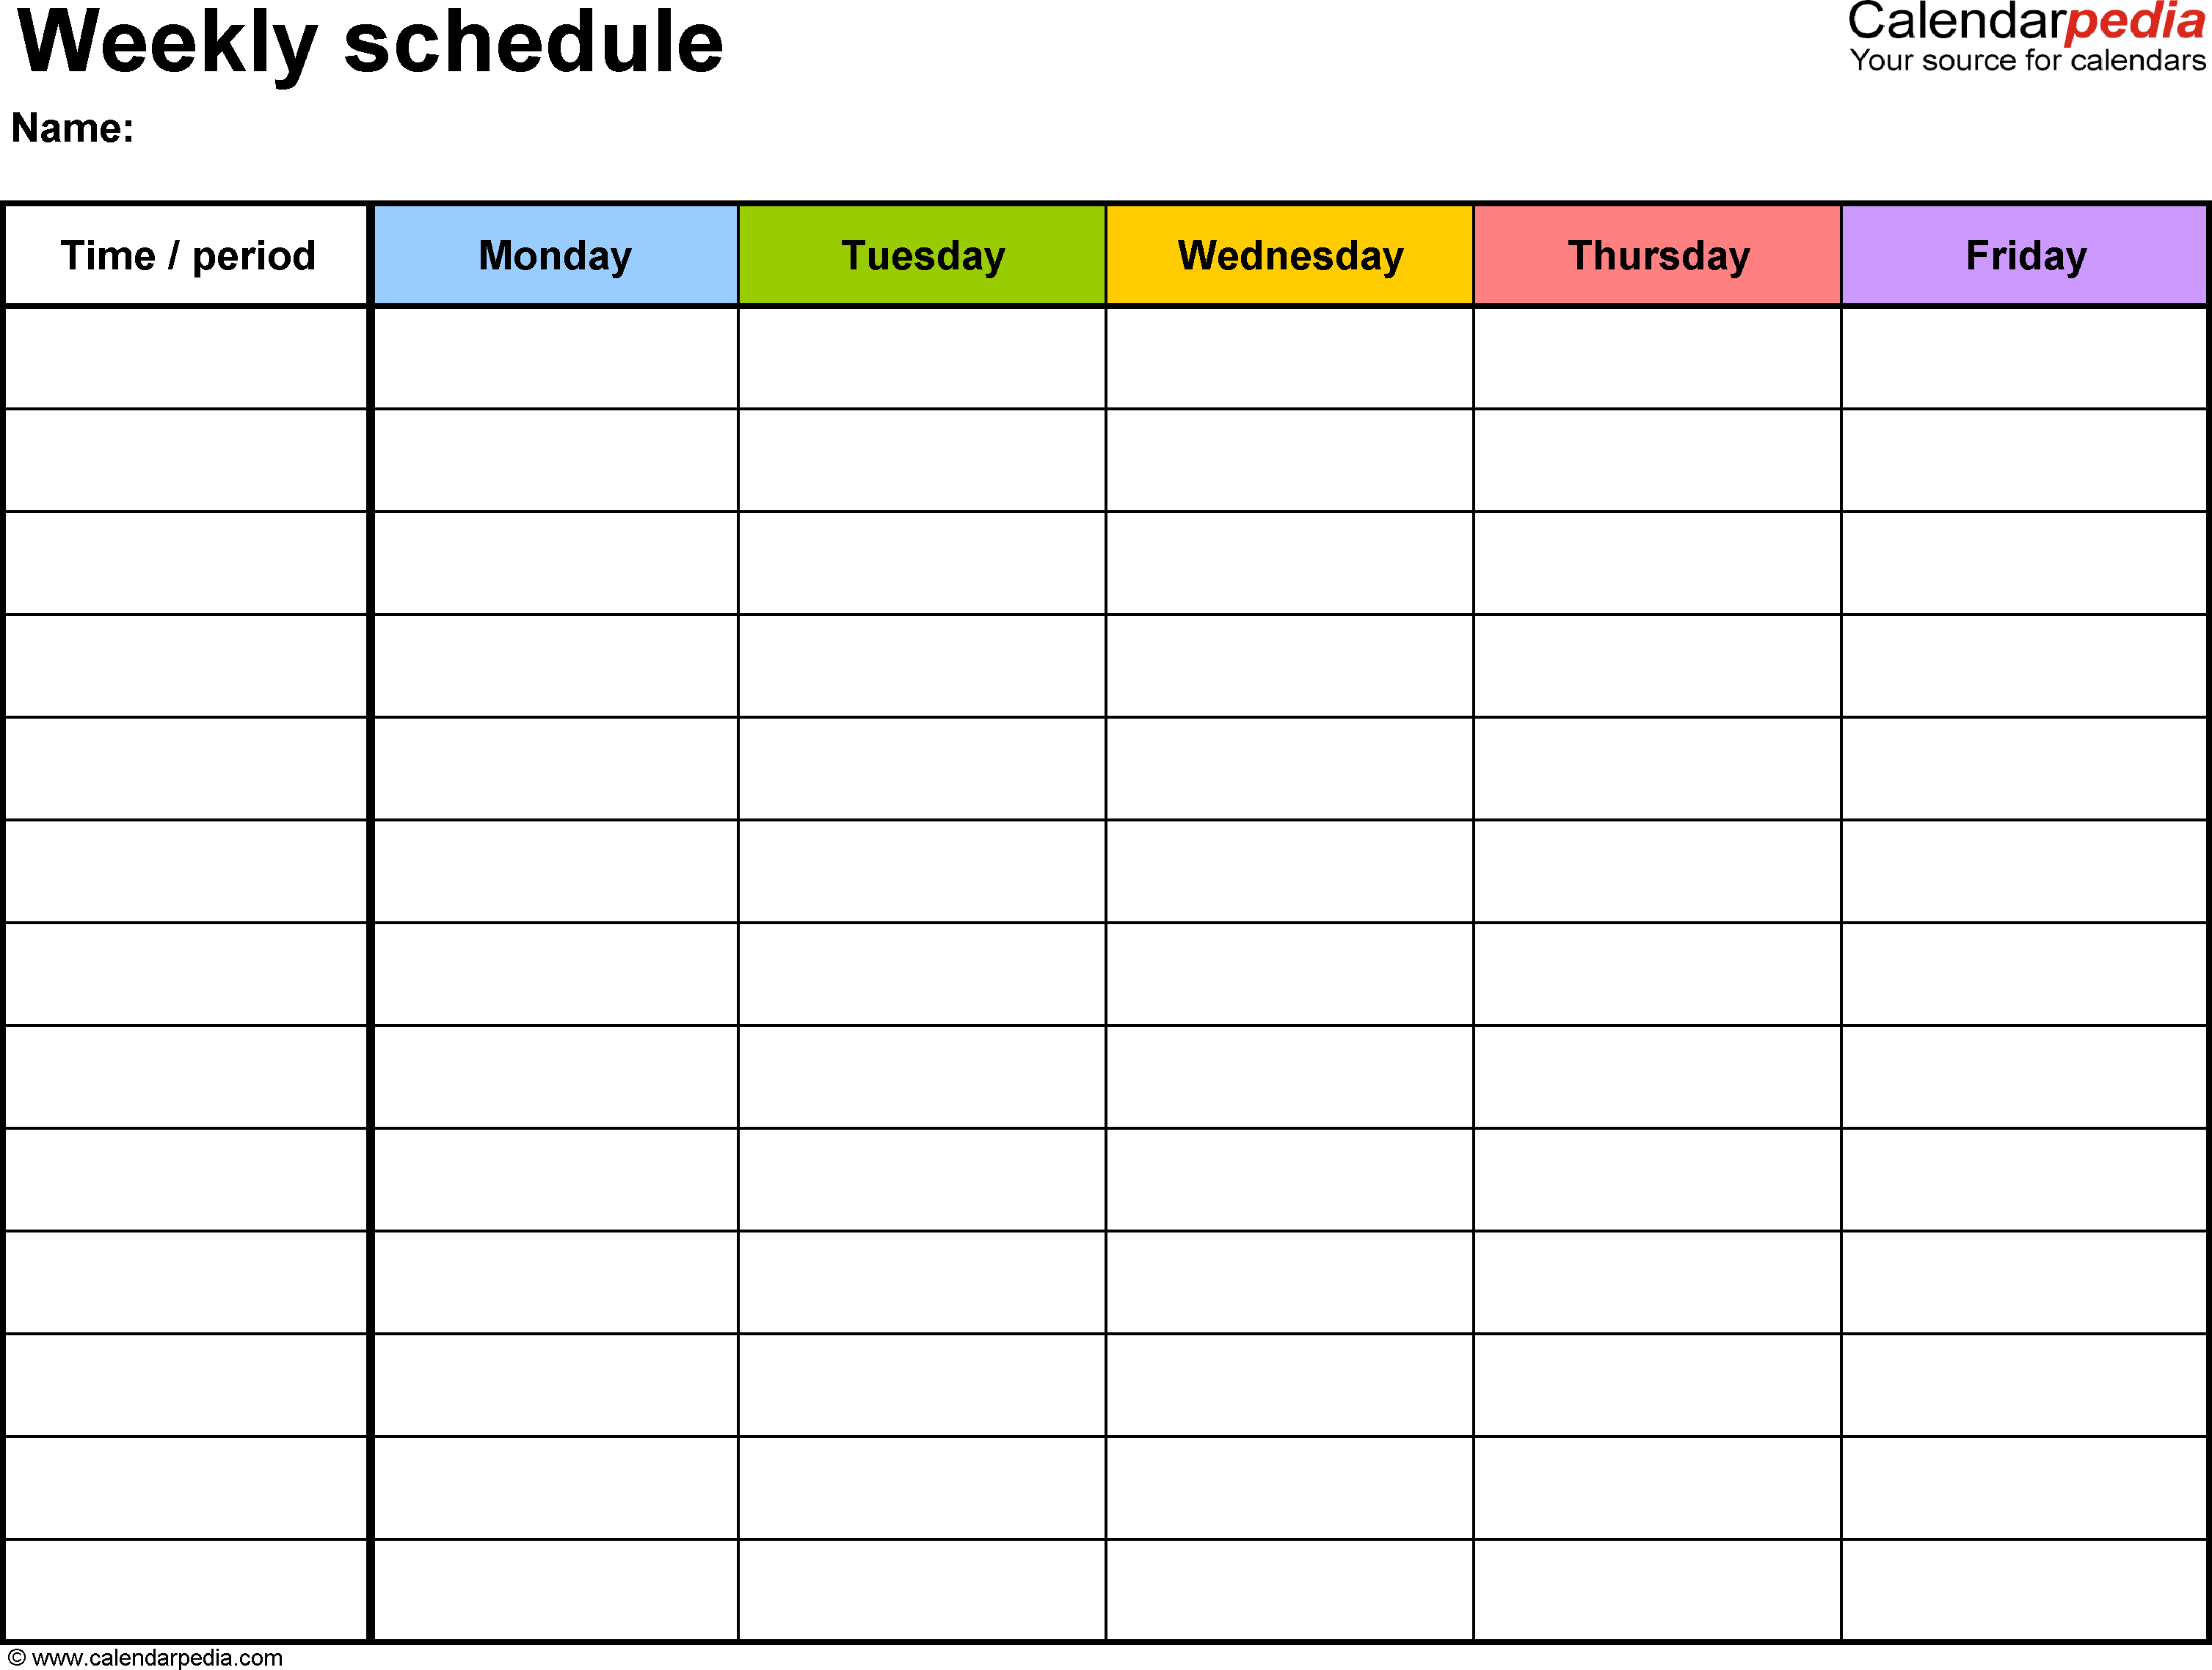 Free Weekly Schedule Templates For Word - 18 Templates - Free Printable Academic Planner